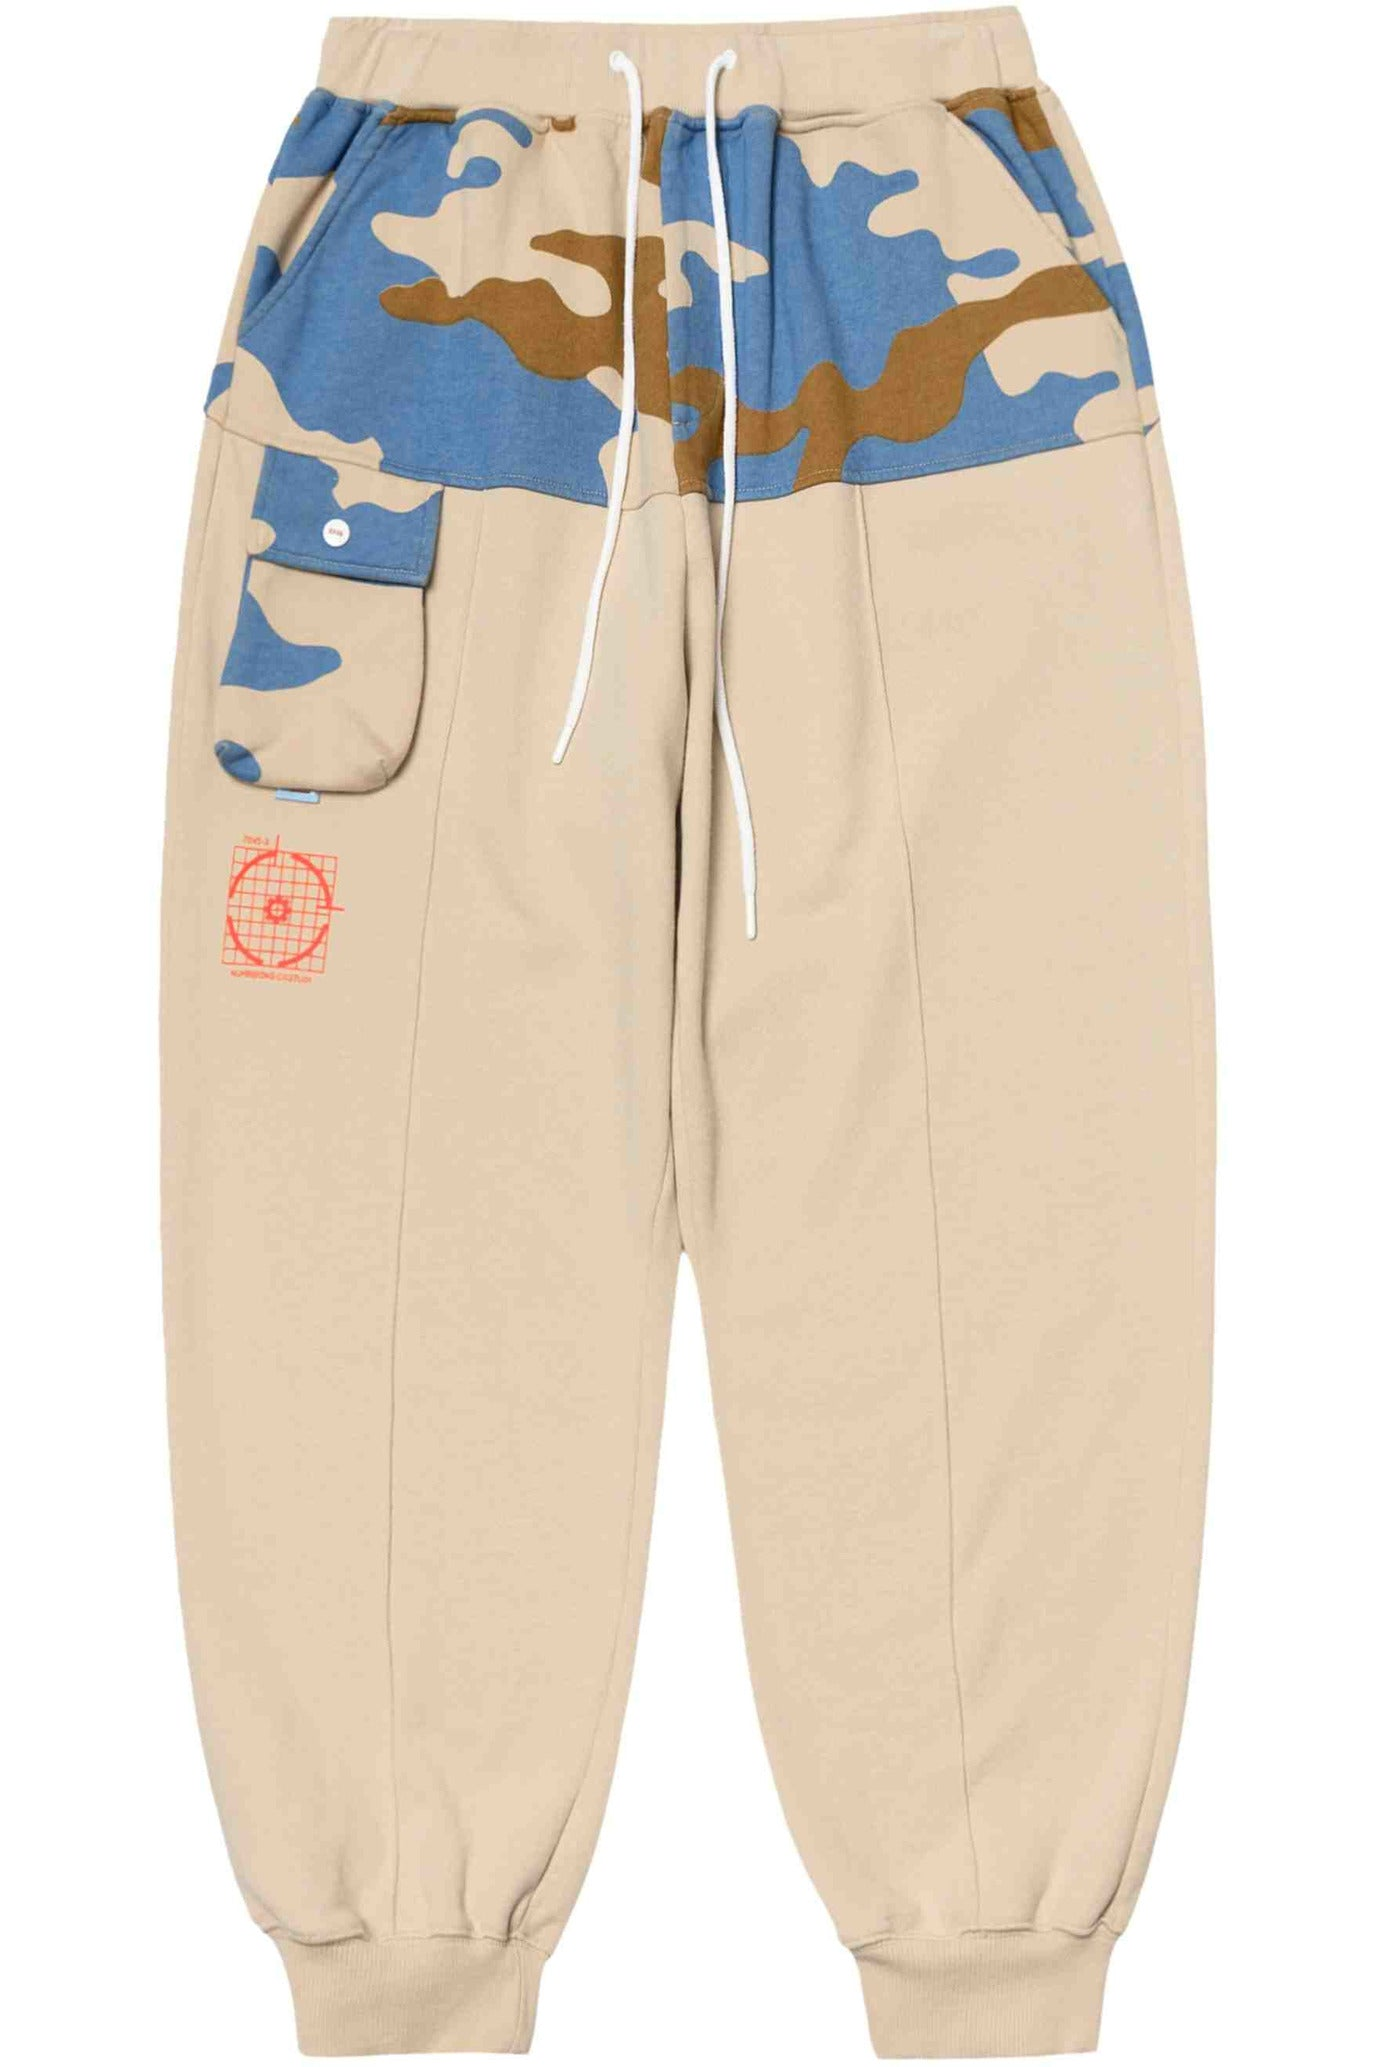 Fearom Camo Sweatpants